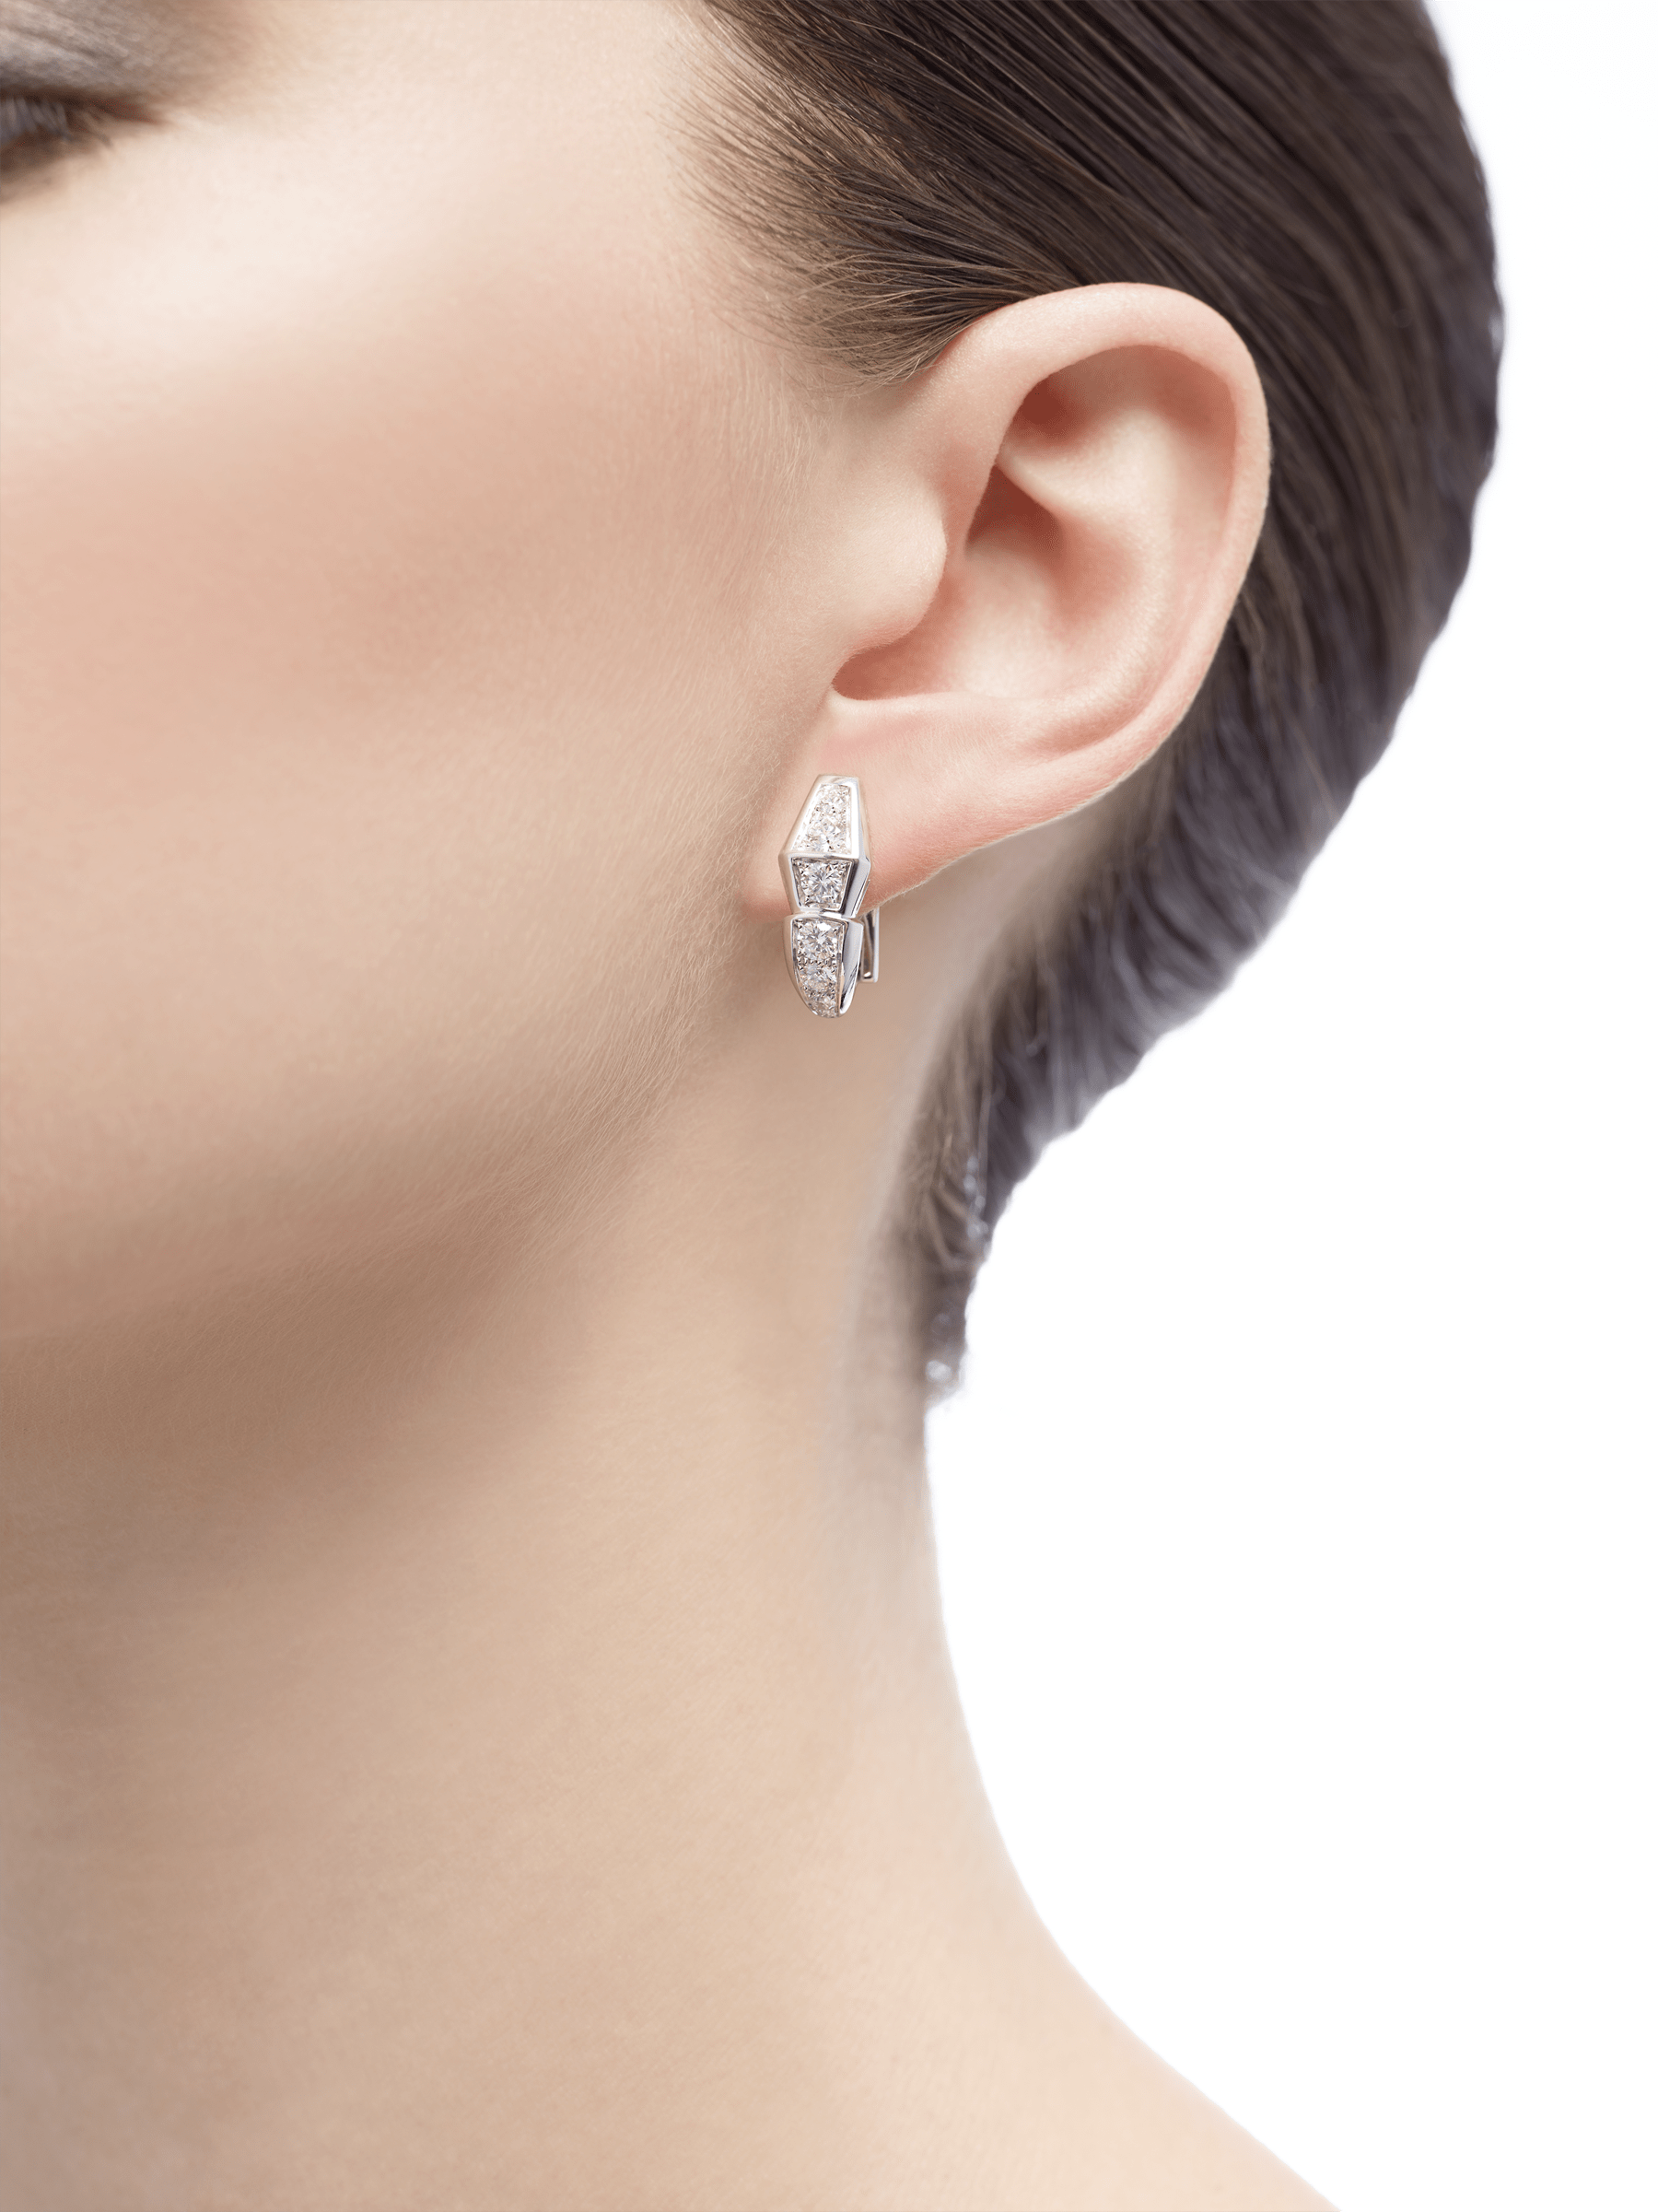 Serpenti Viper slim earrings in 18 kt white gold, set with full pavé diamonds. 351426 image 3